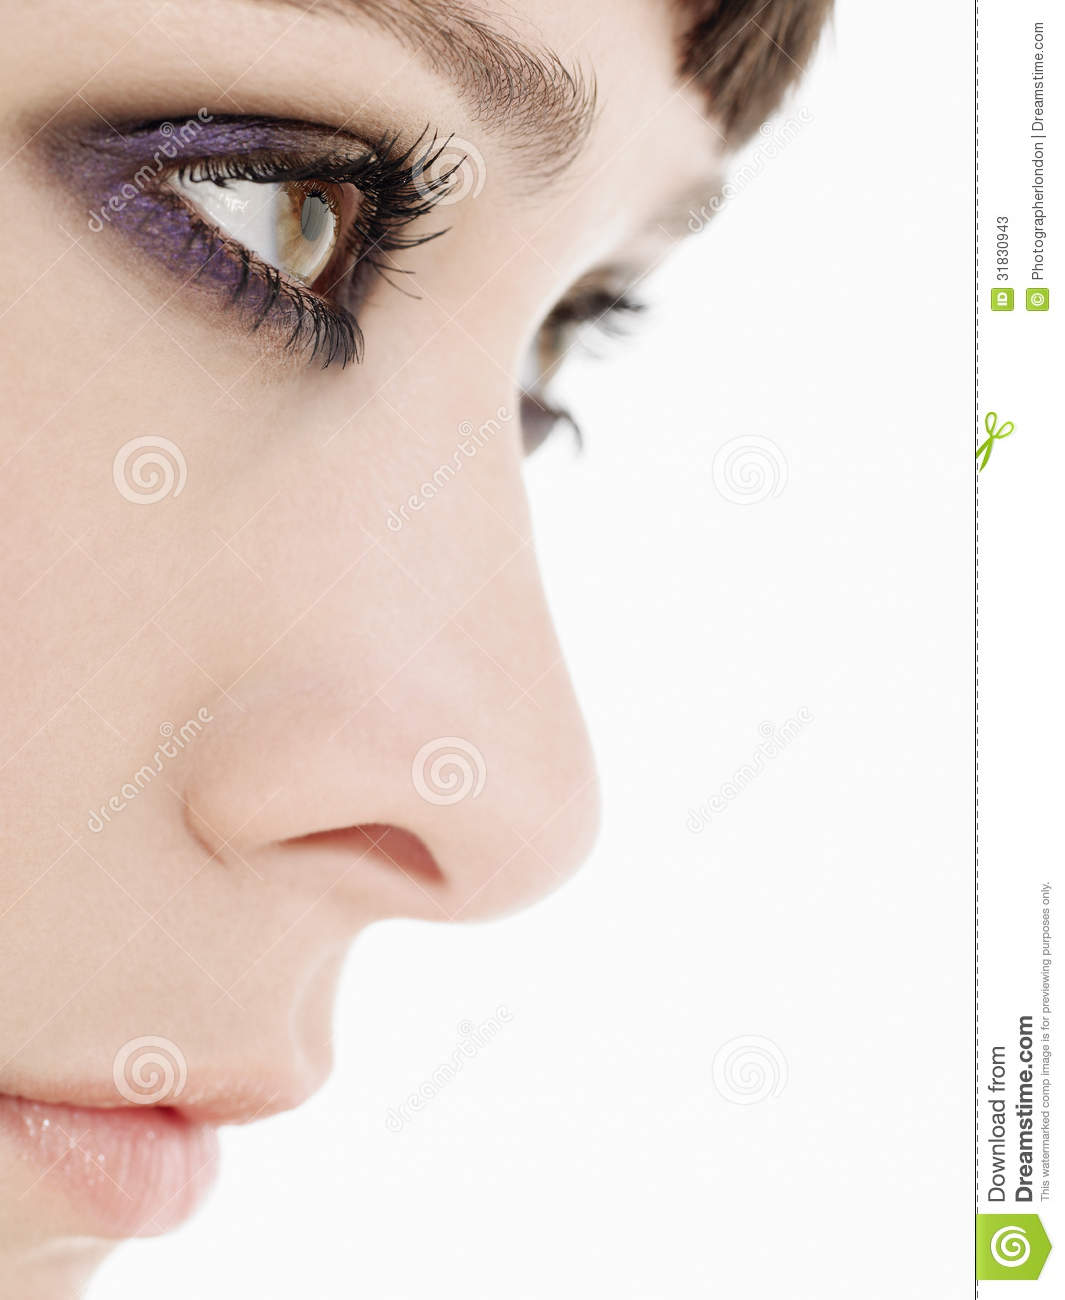 Young Woman Wearing Heavy Eye Makeup Side View Close Up Stock Image - Image 31830943